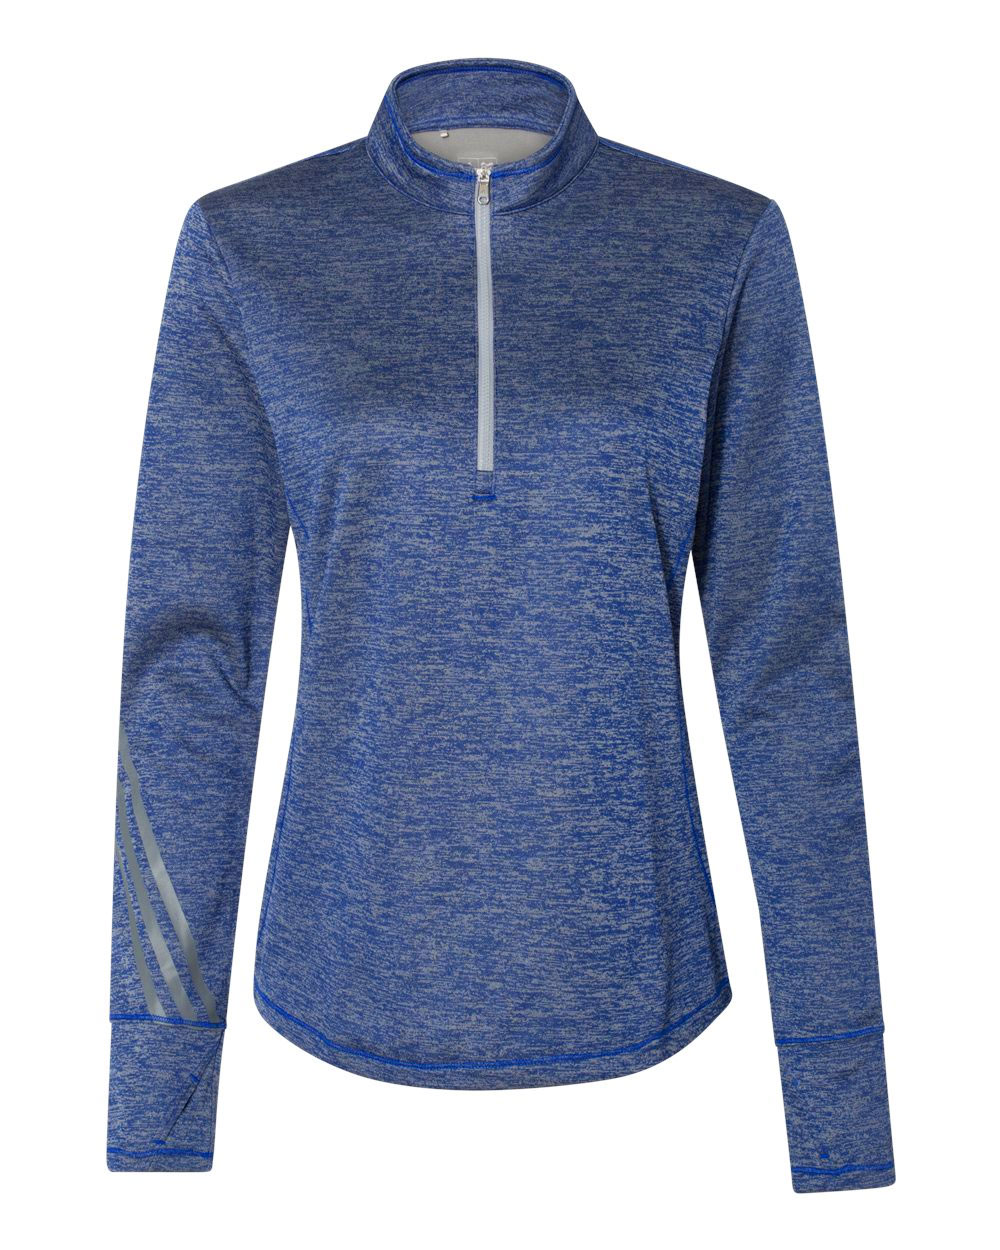 Adidas Womens Brushed Terry Heather 1/4 Zip Pullover